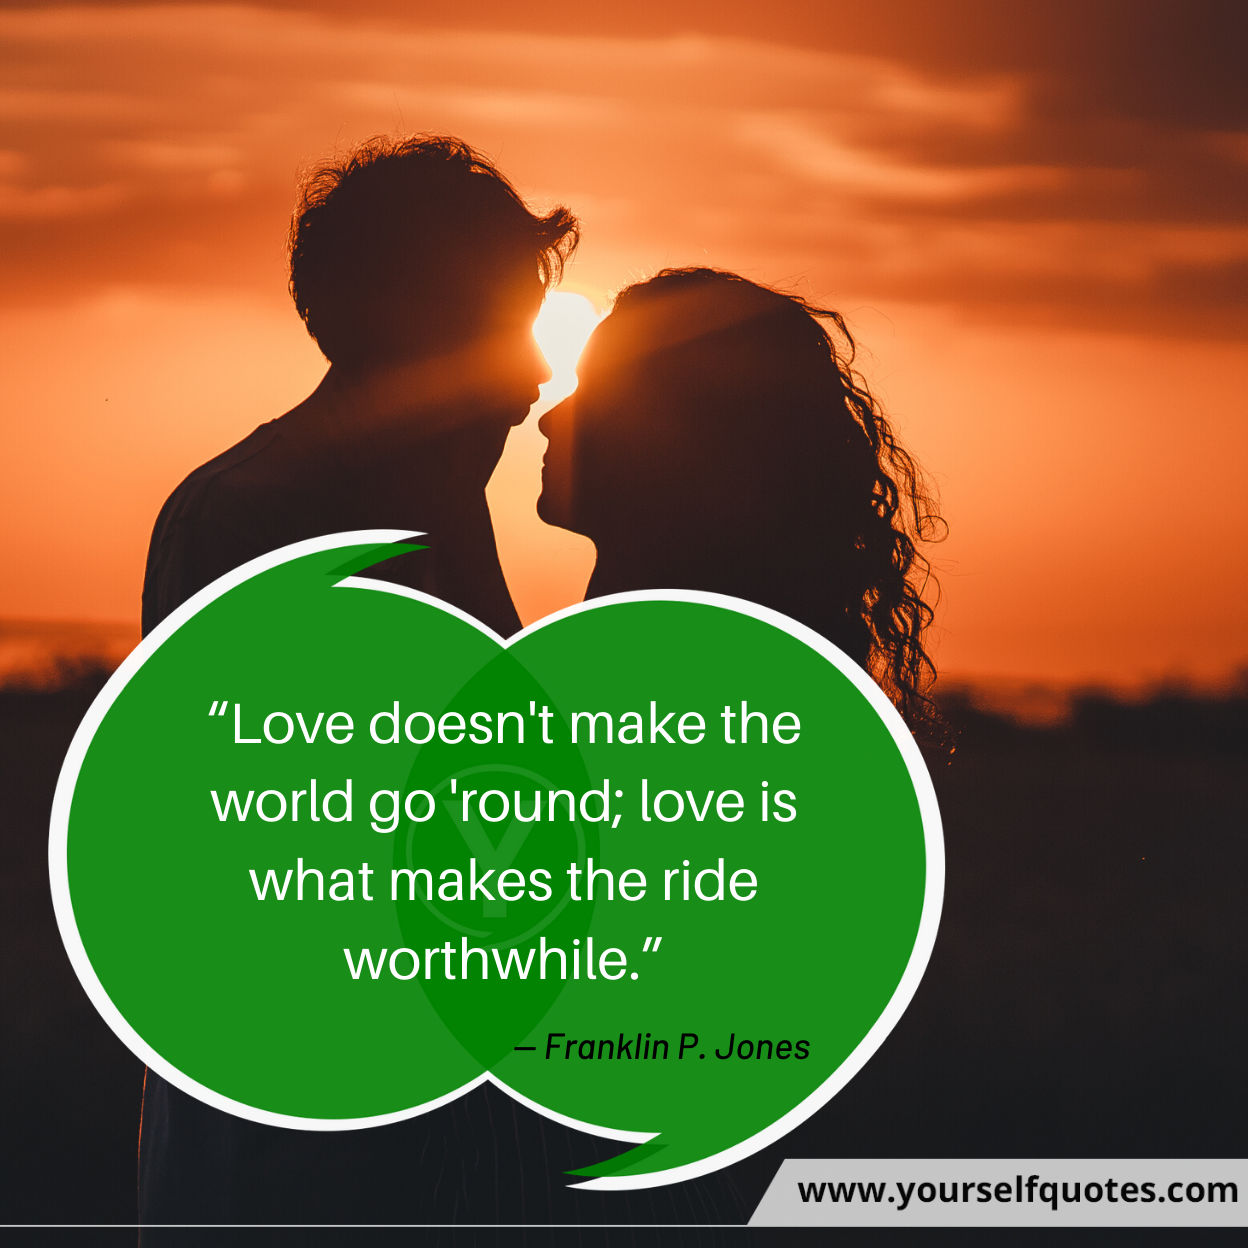 Quotes on Love by Franklin P. Jones